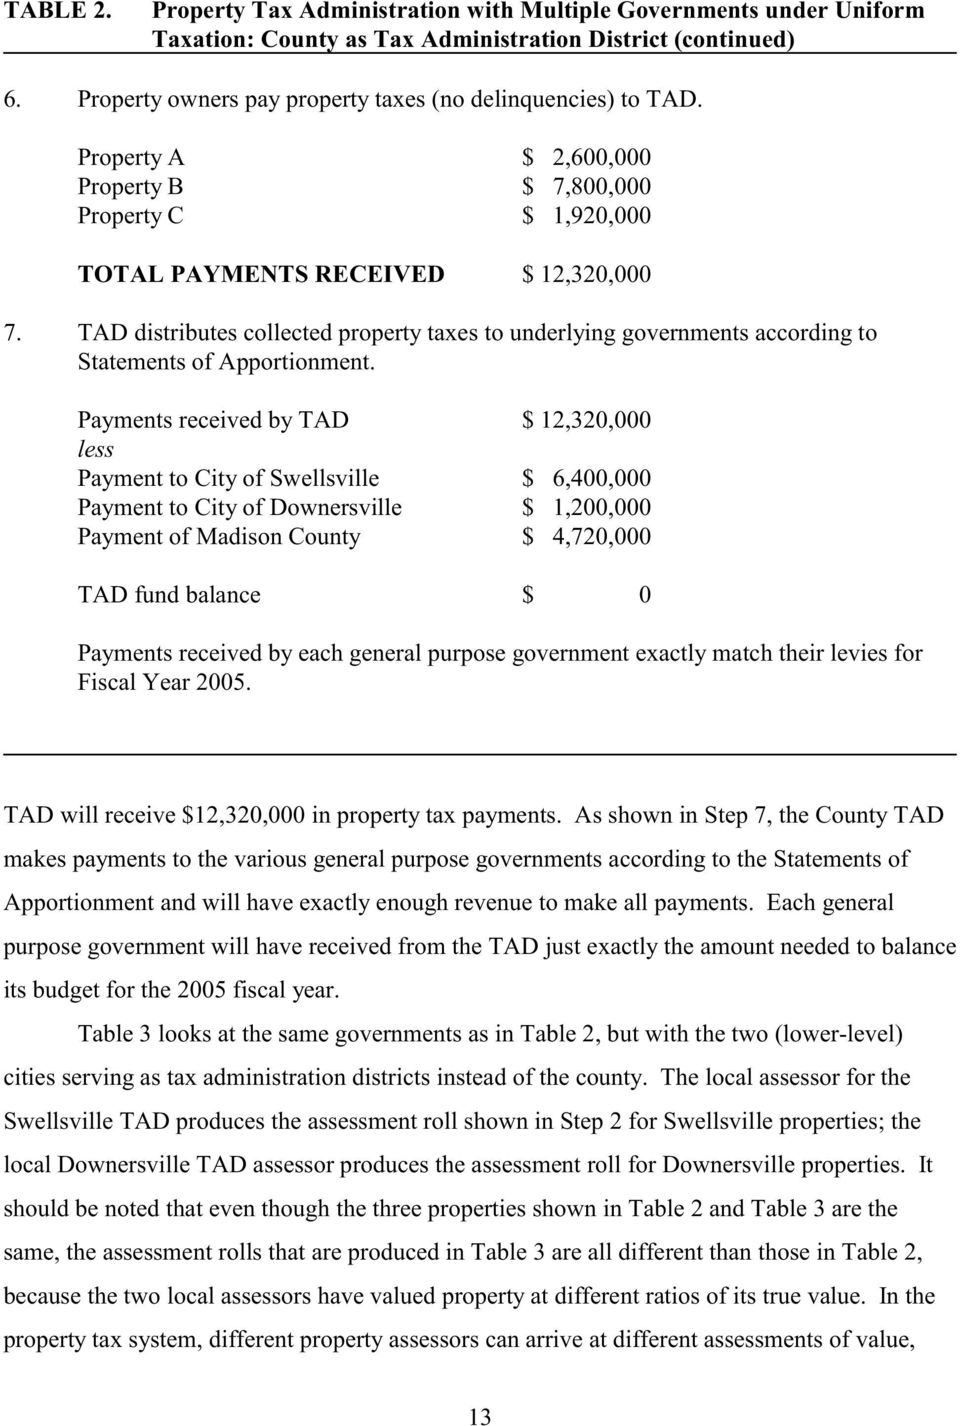 TAD distributes collected property taxes to underlying governments according to Statements of Apportionment.